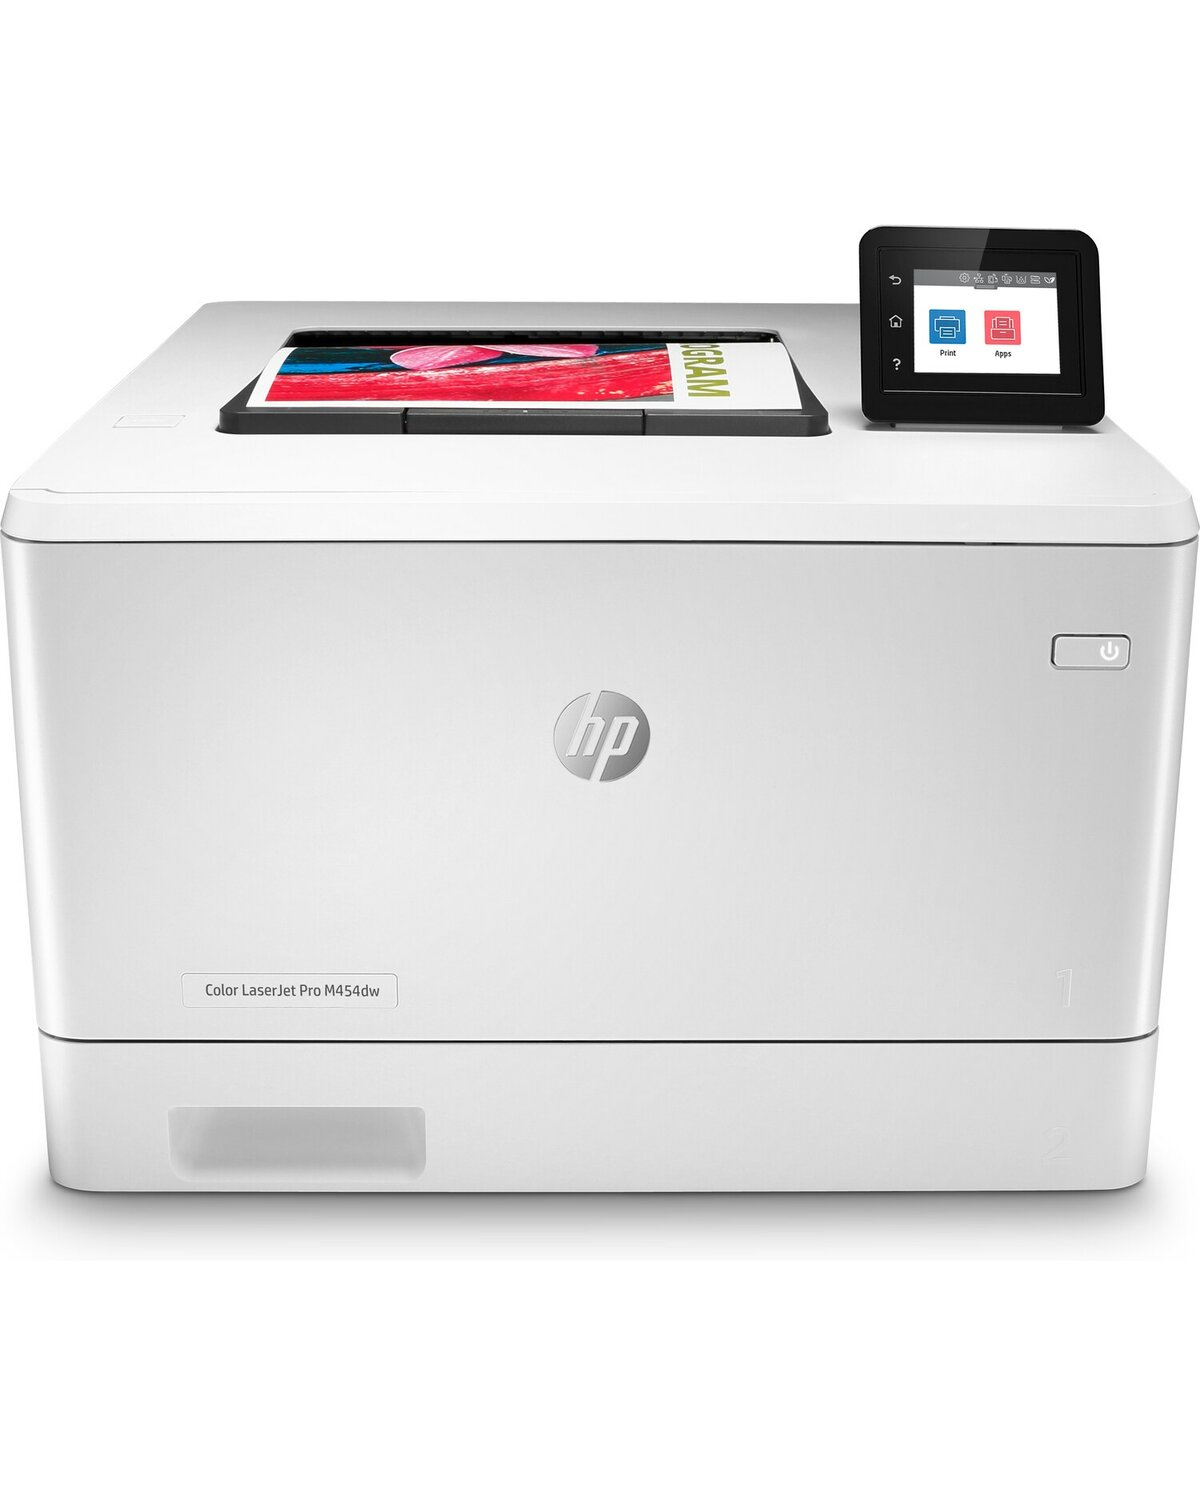 HP Color LaserJet Pro M454dw Printer